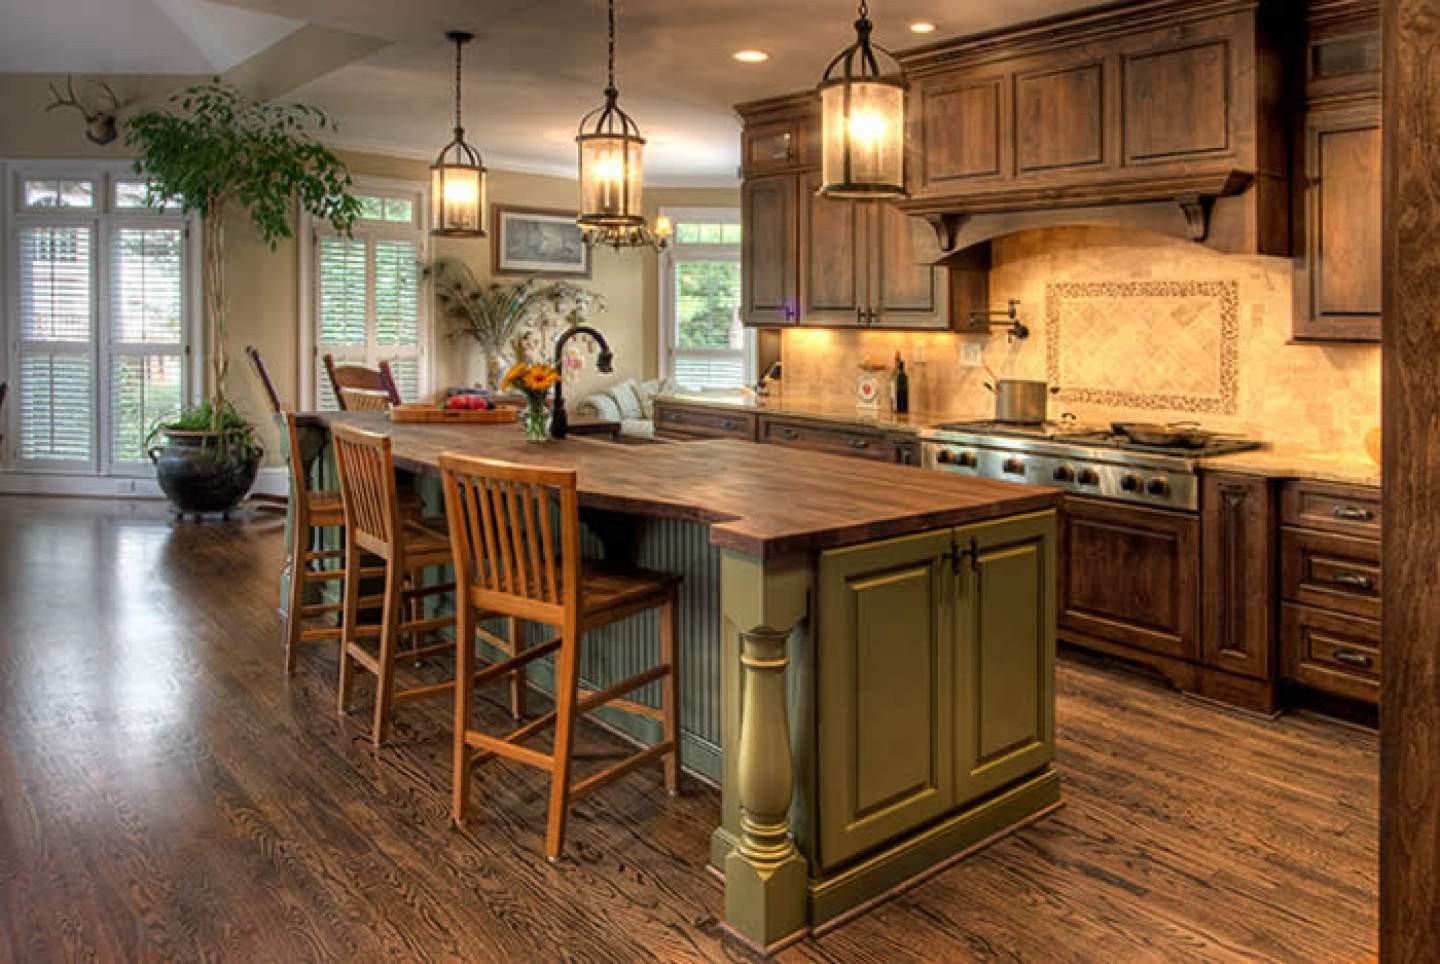 Hardwood Floors Magazine Of How Good is Laminate Flooring In Kitchens Elegant Extraordinaryod In How Good is Laminate Flooring In Kitchens Elegant Extraordinaryod Floors In Kitchen Problems Laminate Flooring